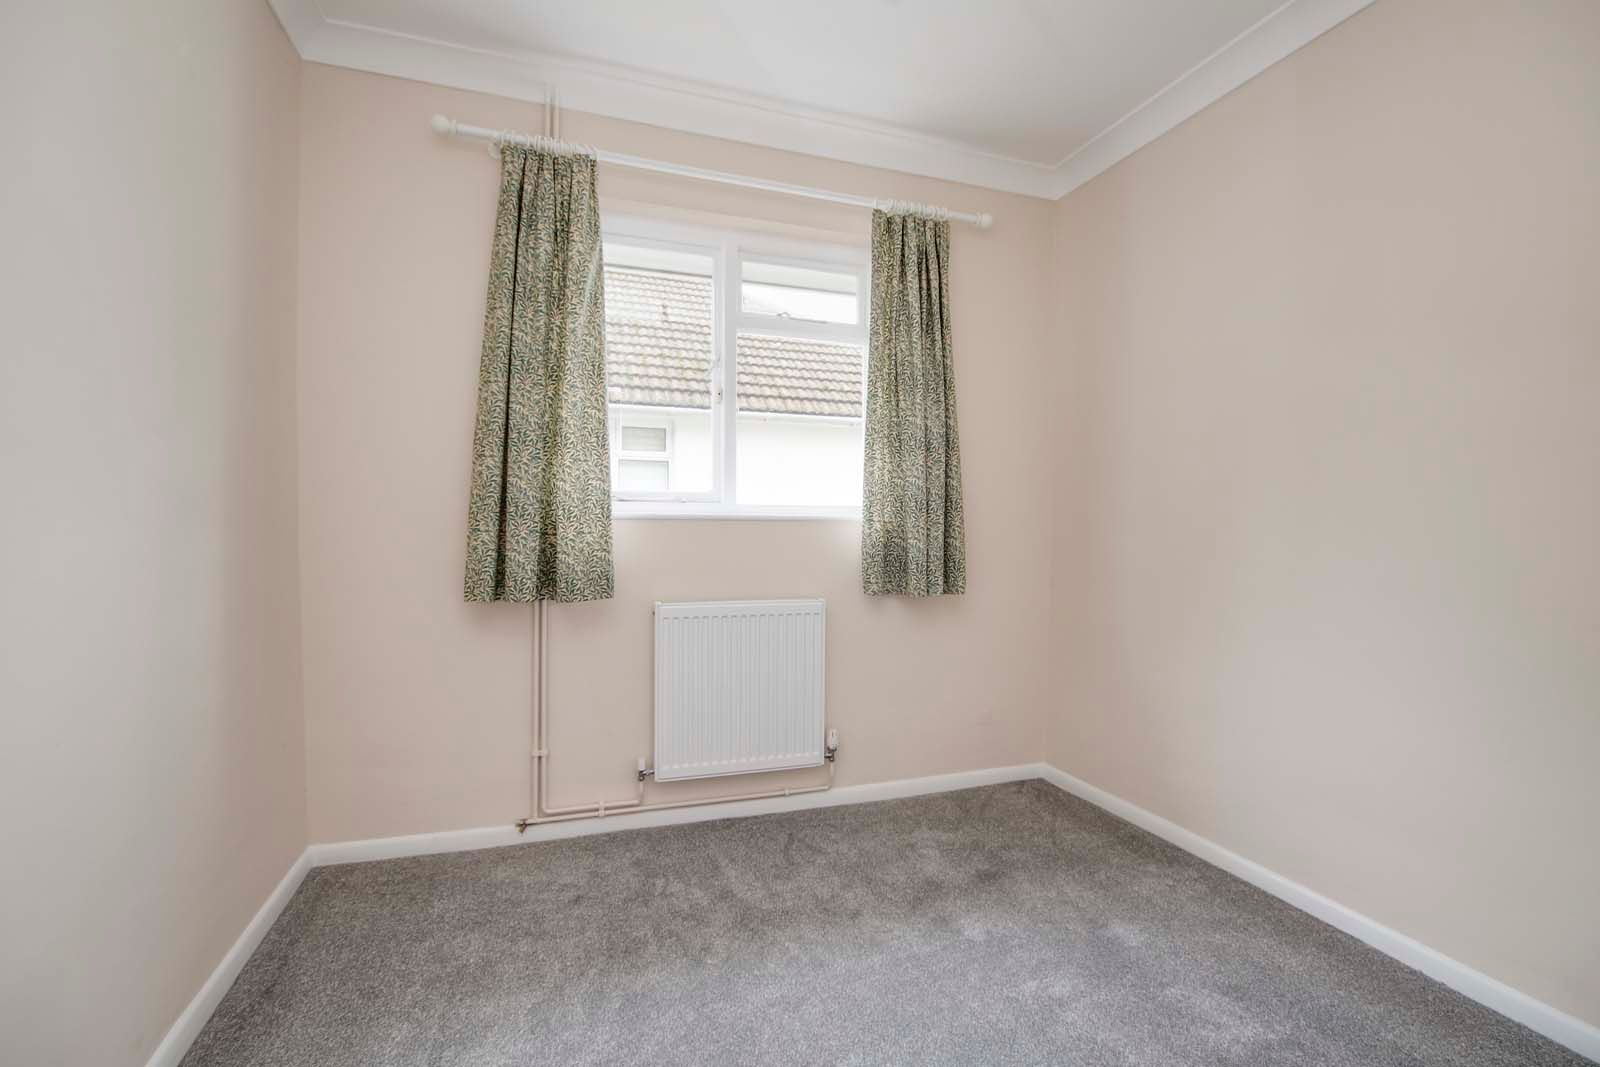 3 bed bungalow for sale in Hillview Crescent COMP MAY 2019  - Property Image 9